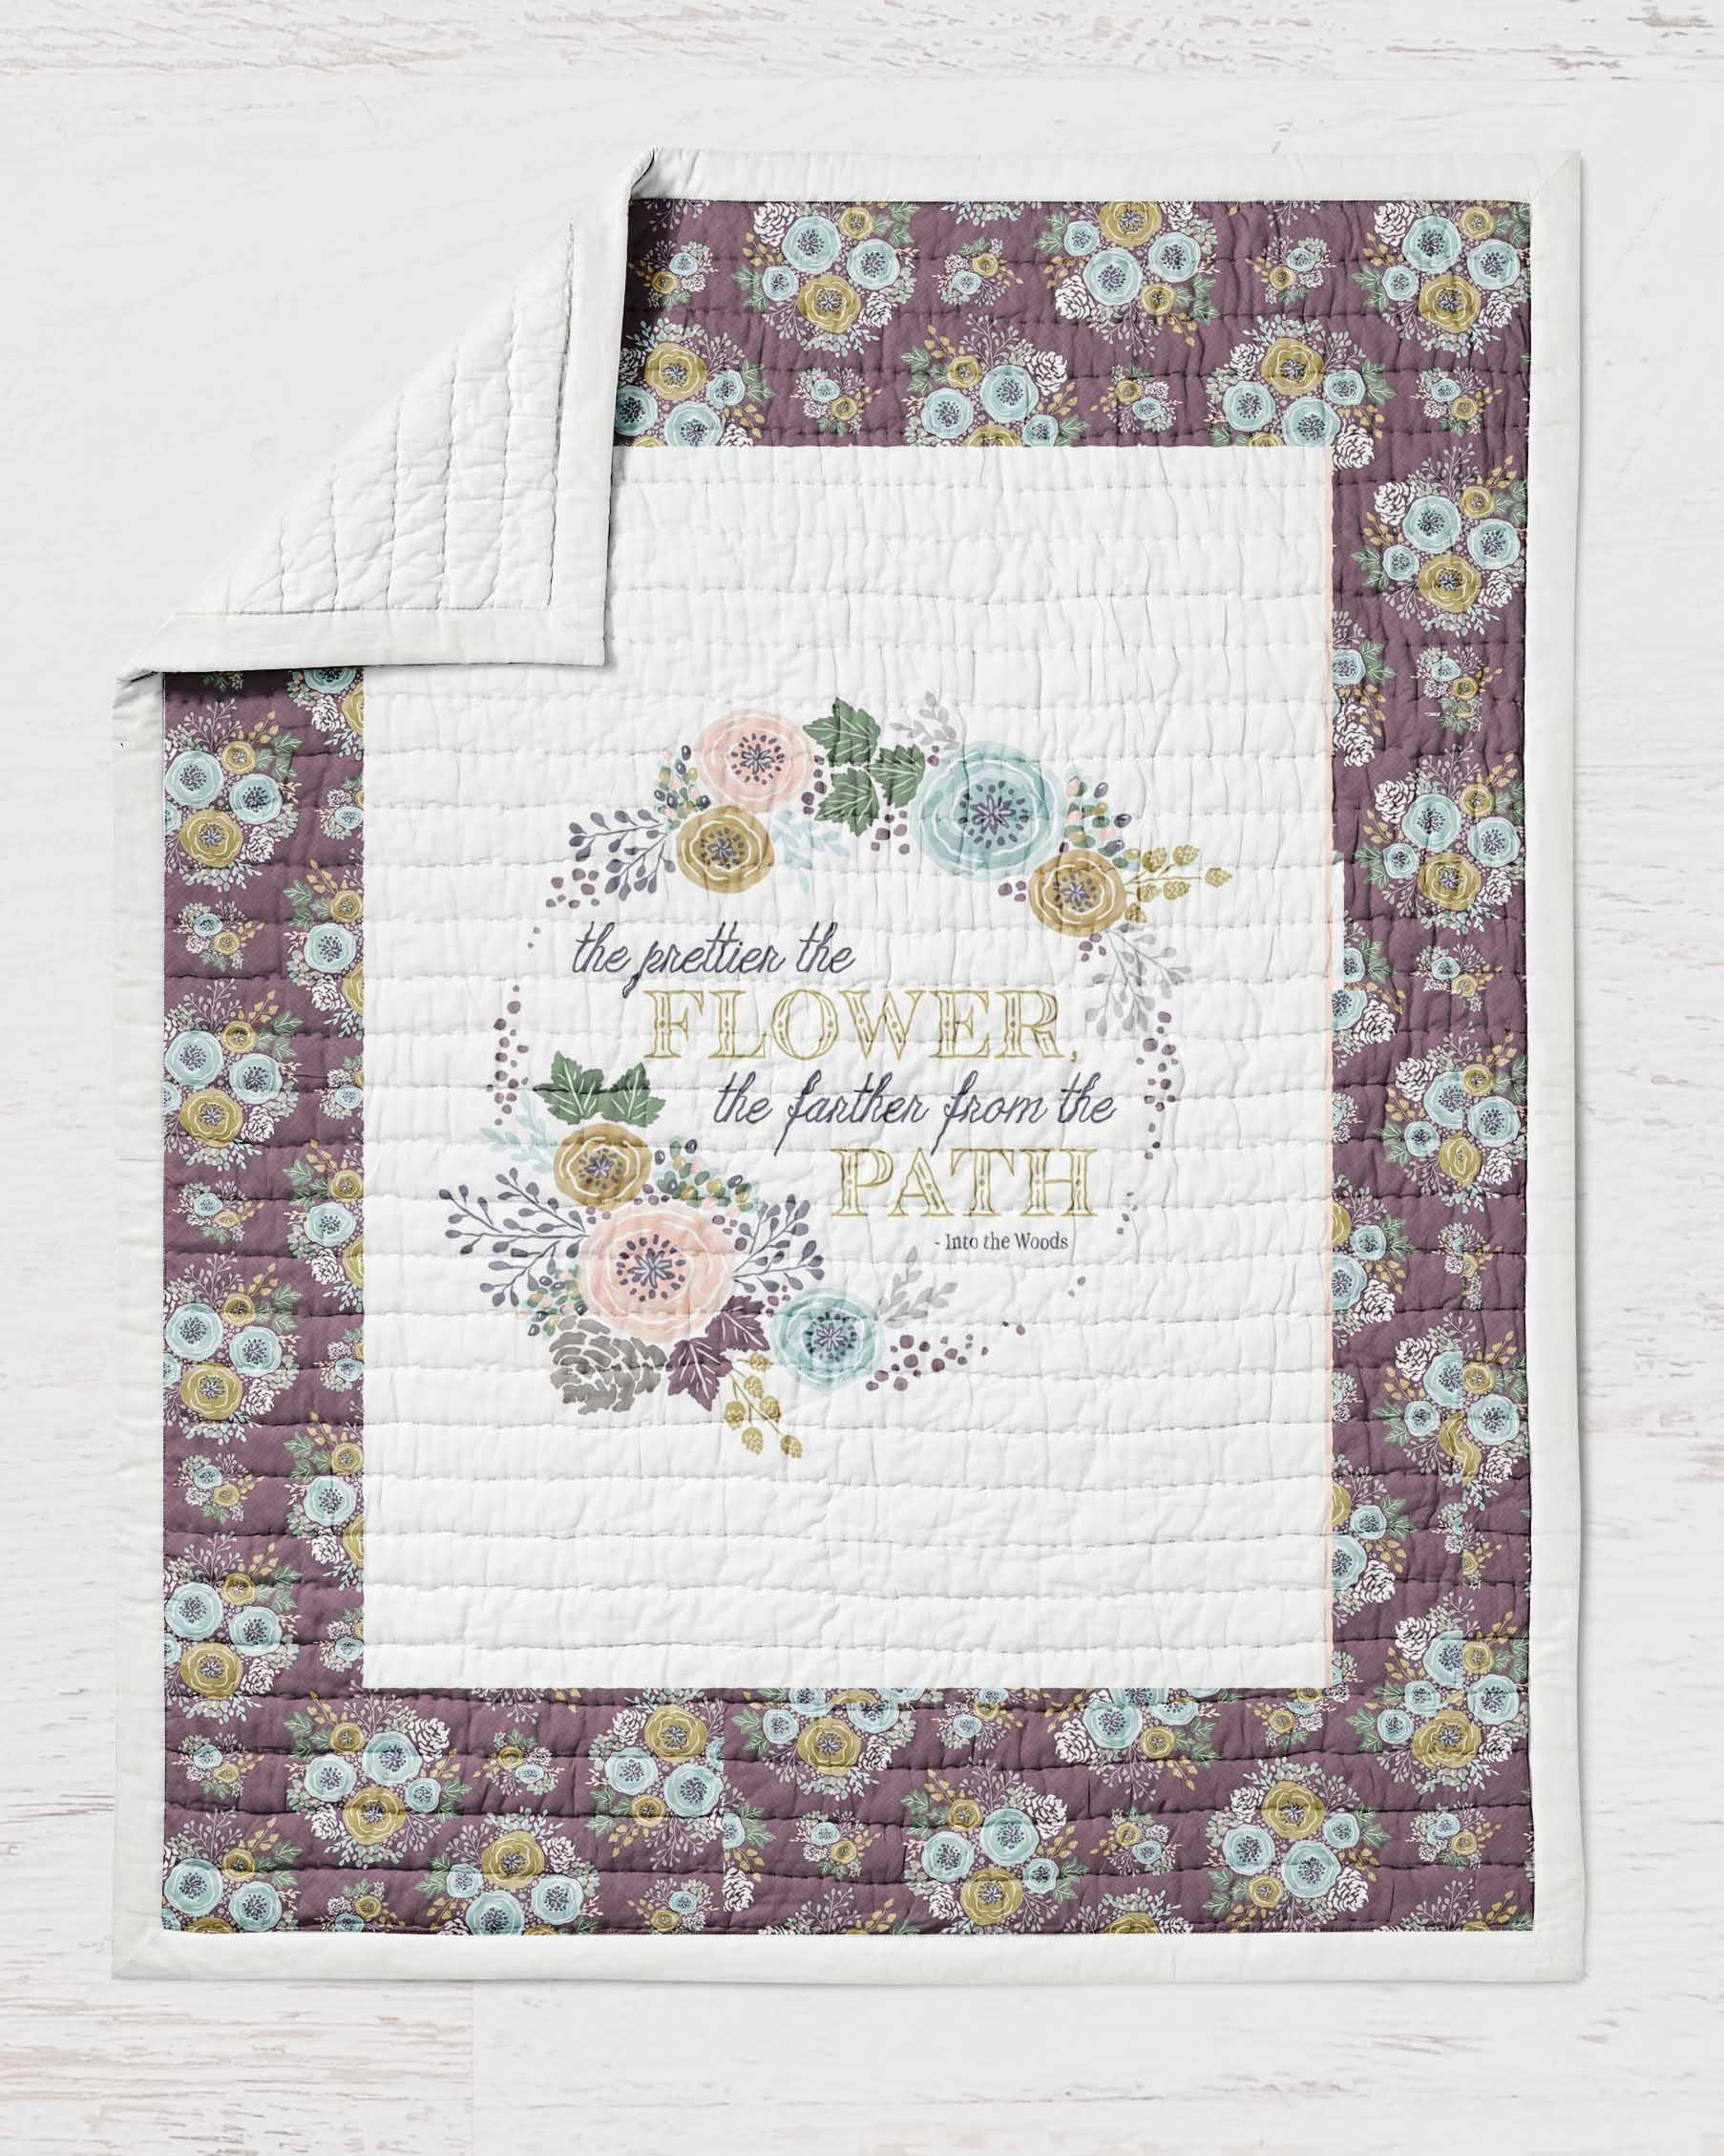 Floral Quote Quilt Twin Full Queen Sized  Wild Flowers Garden Quilt Bohemian  Purple Woodland Girls Bedding Purple Rustic Farmhouse - Dream Evergreen @DreamEvergreen